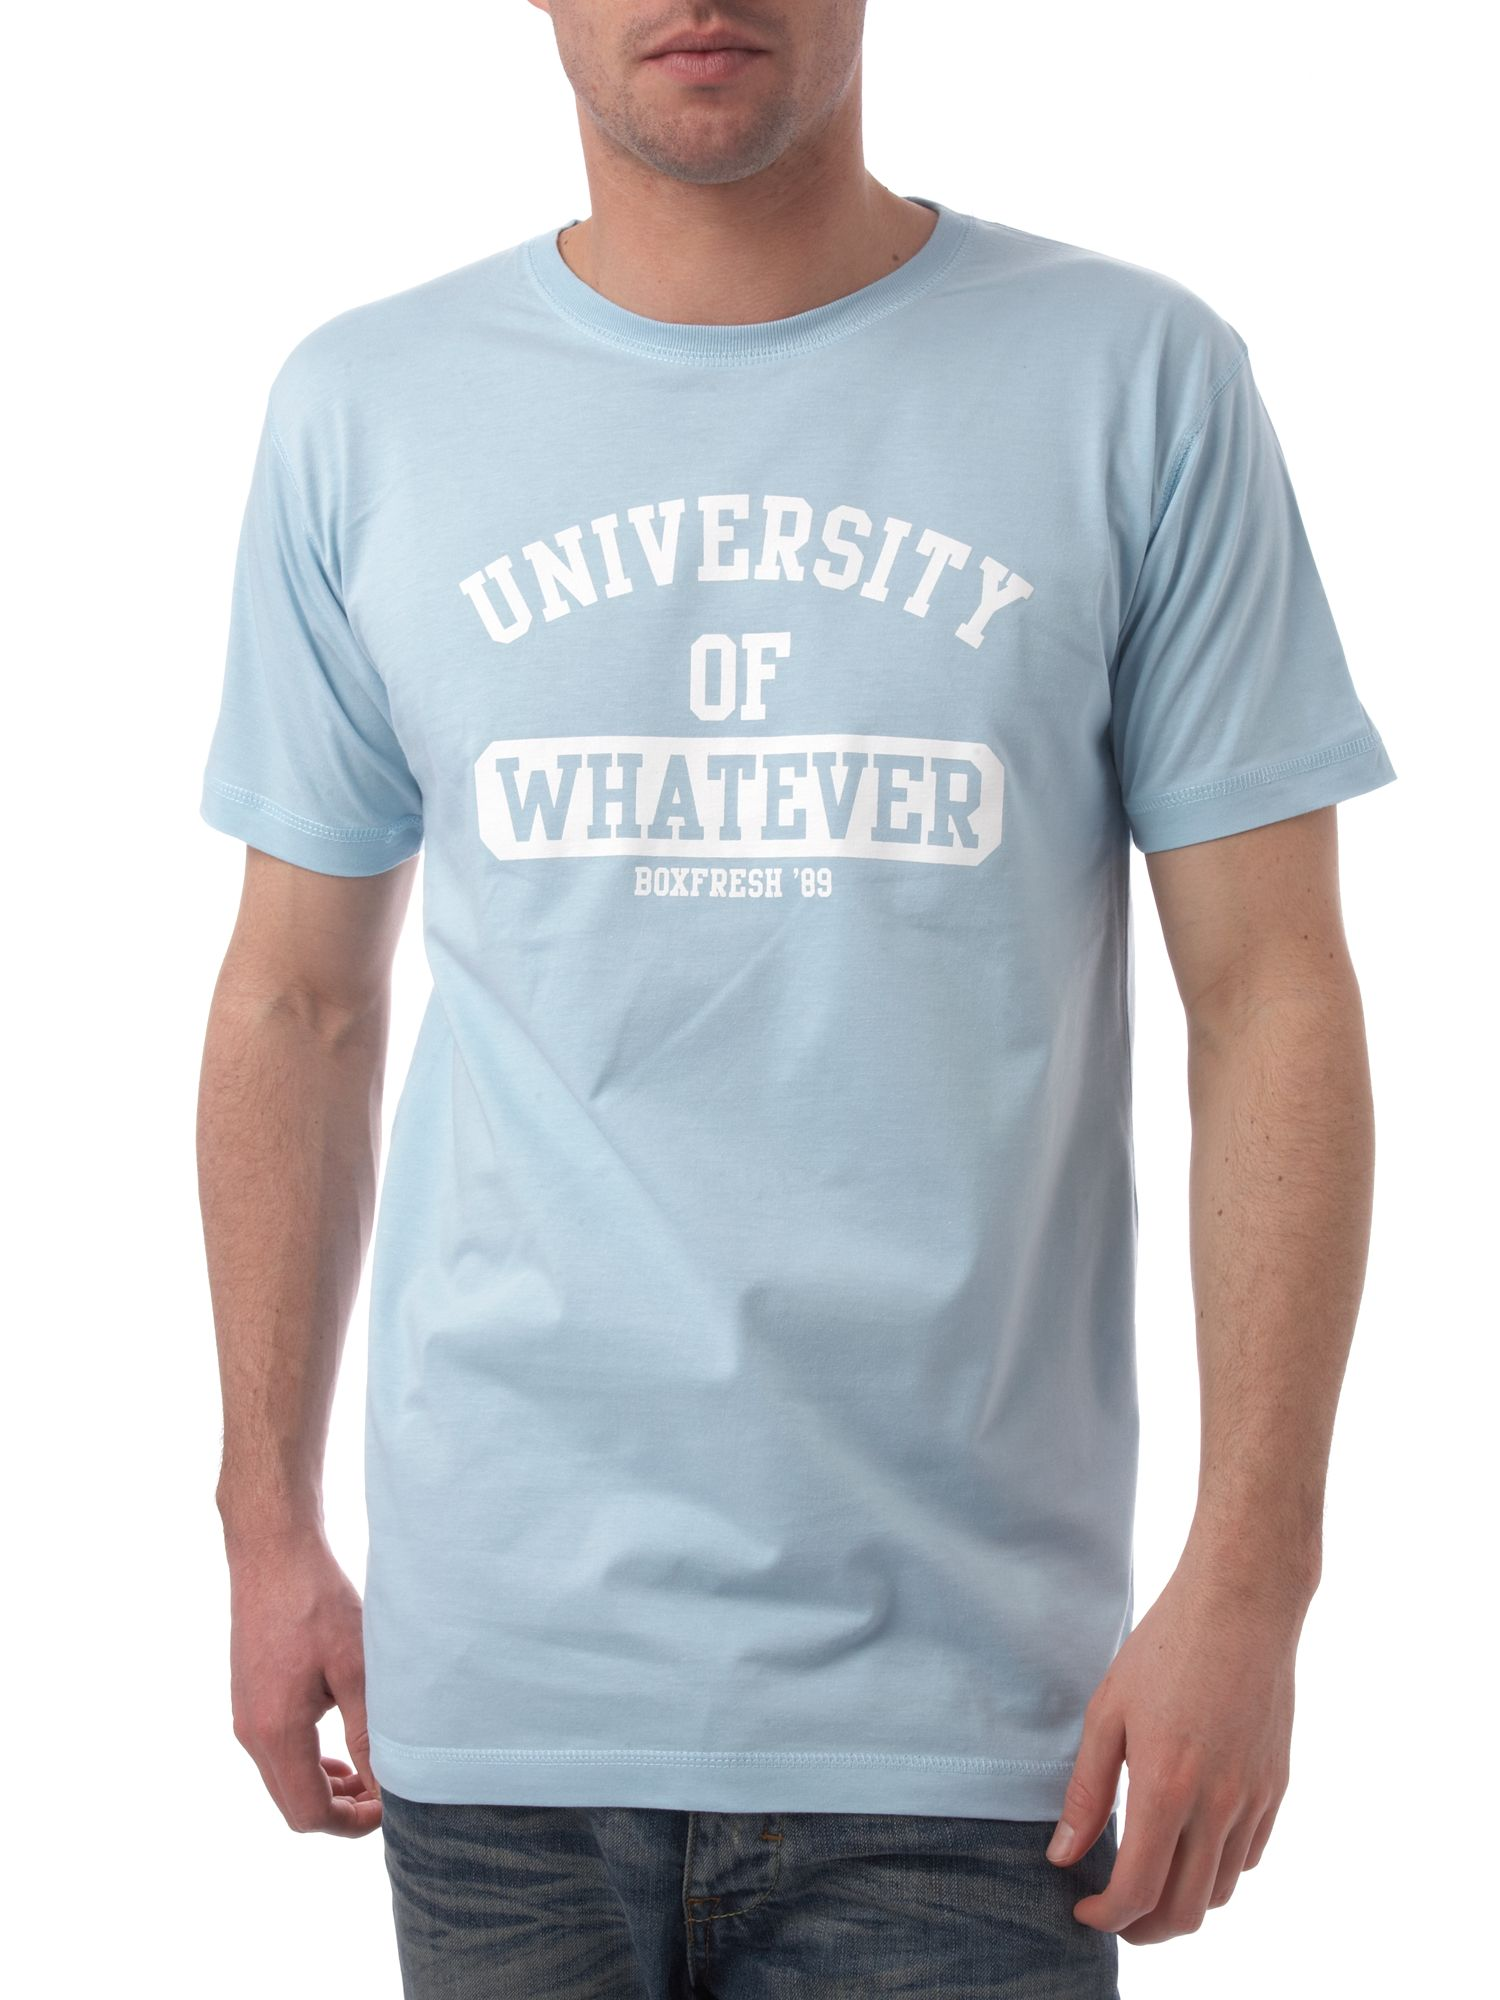 University of whatever printed T-shirt